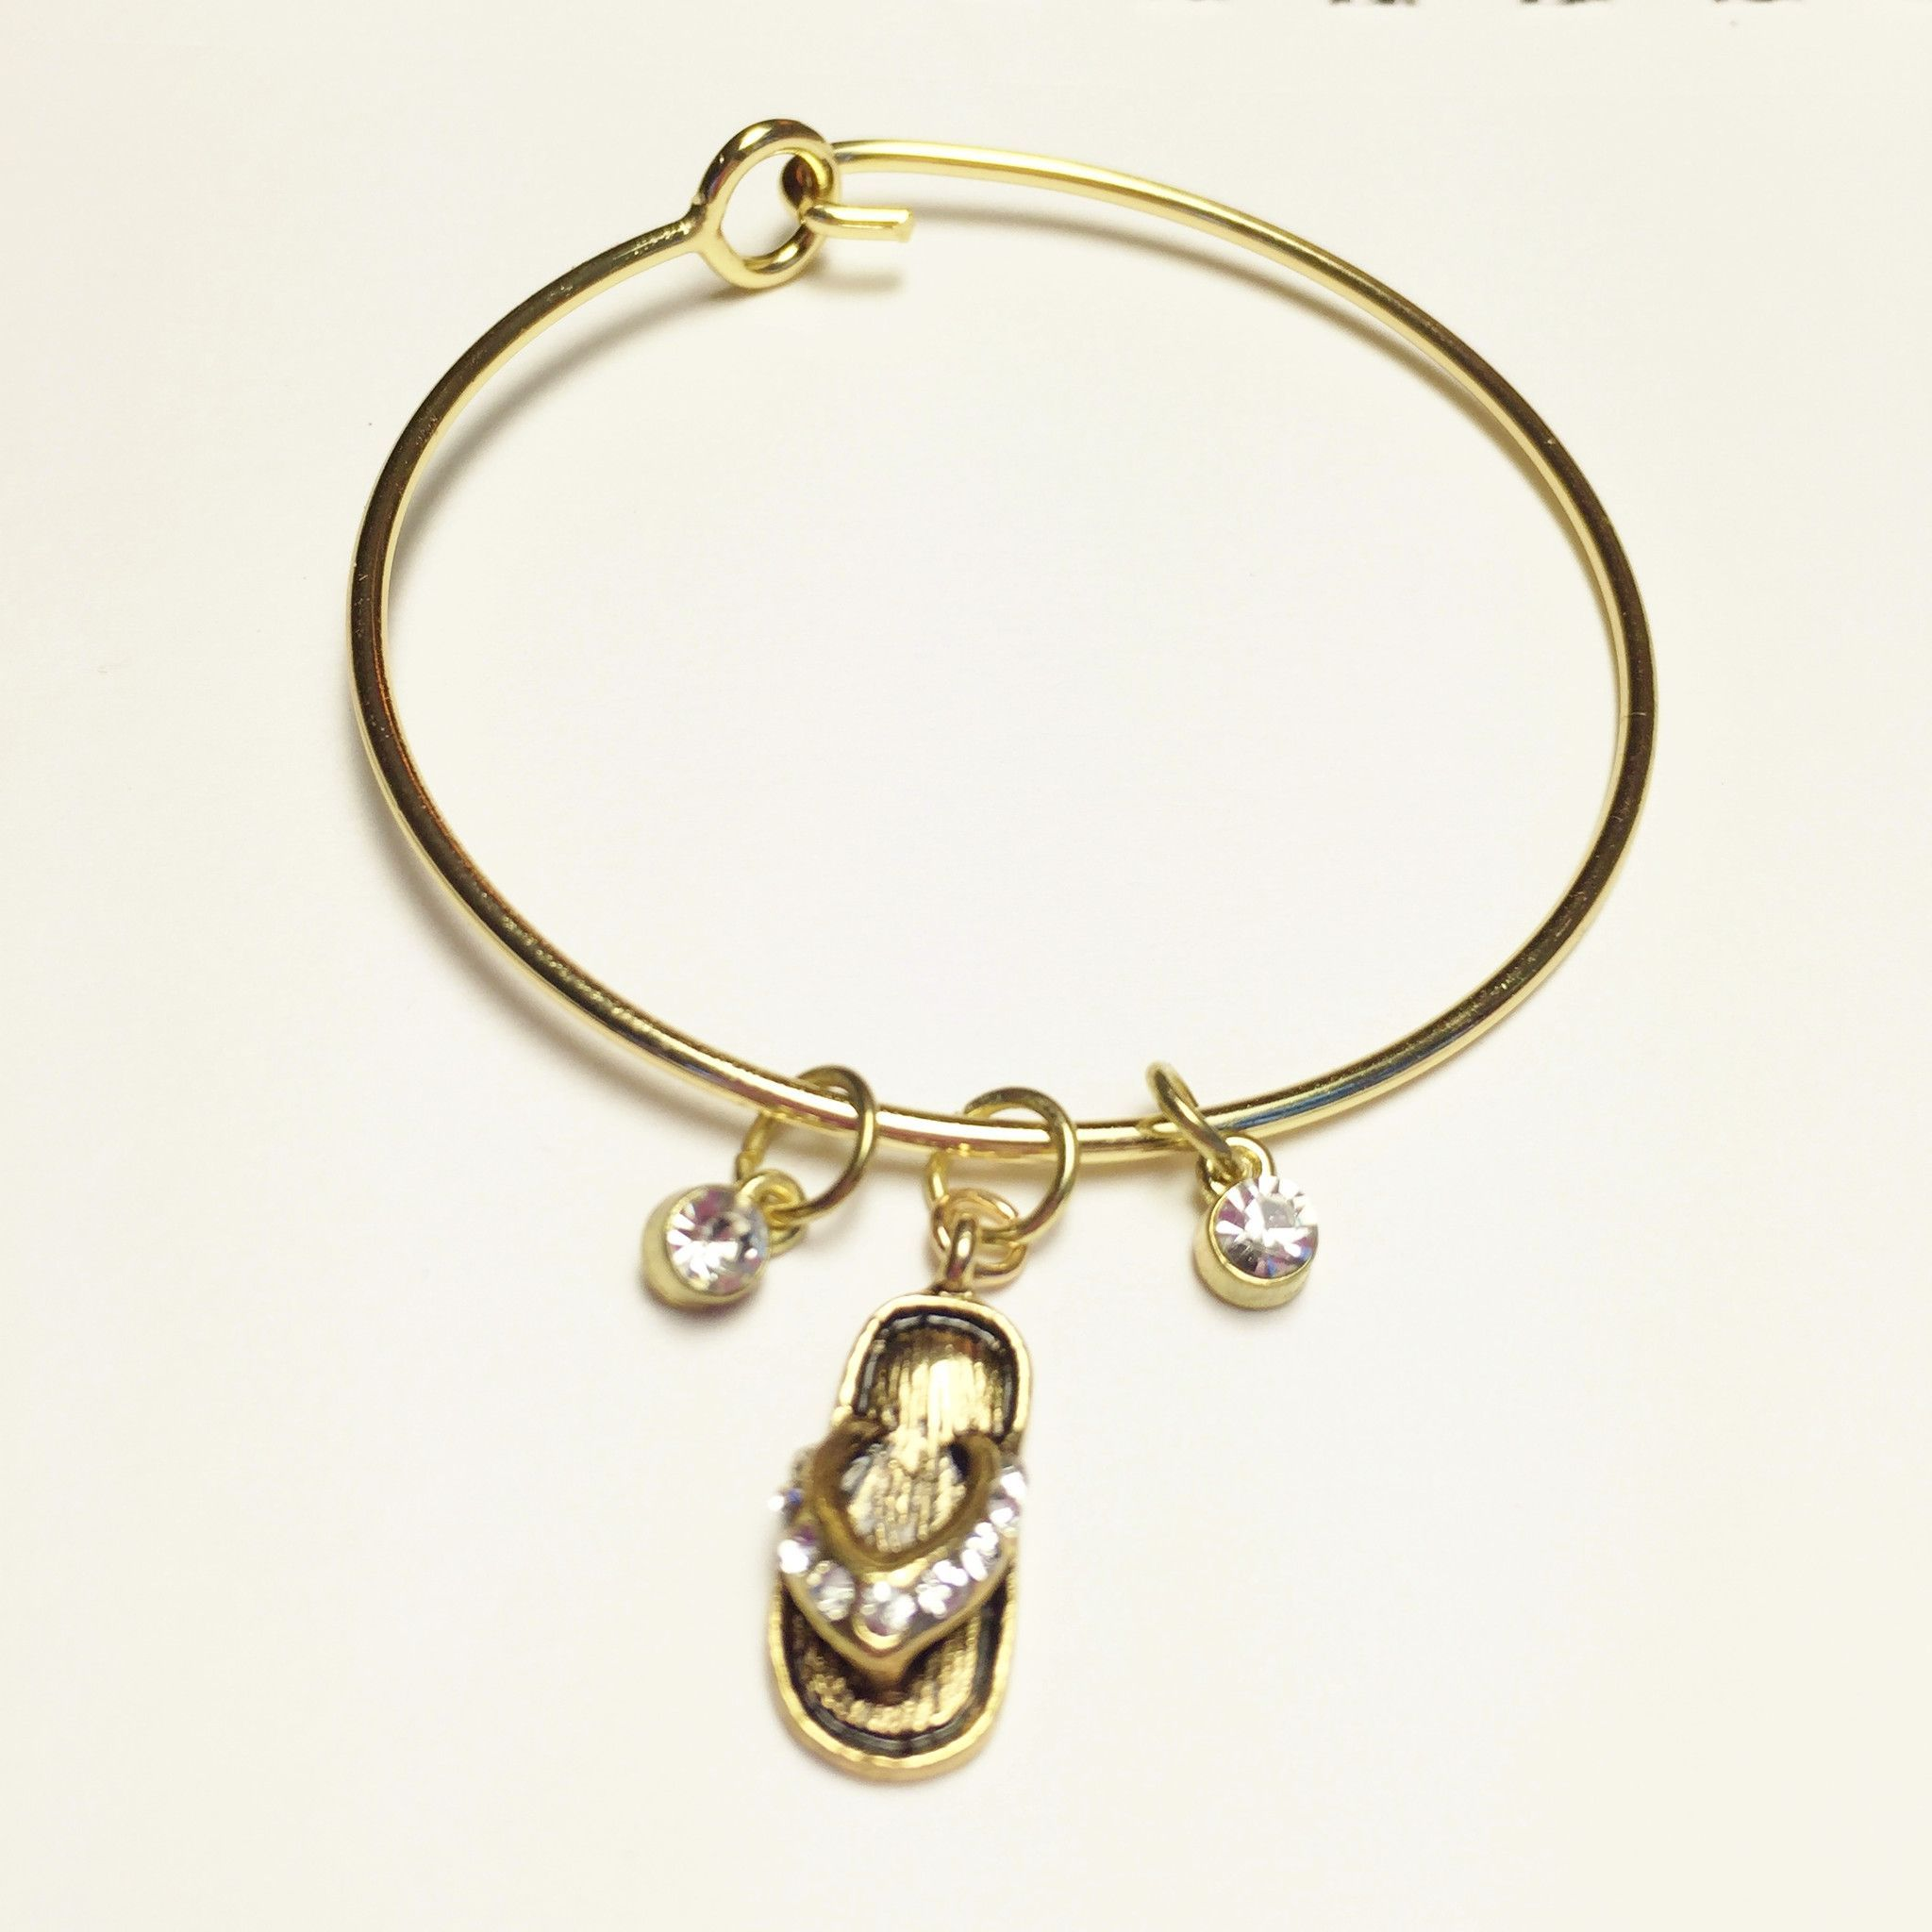 gold flower product lyst bracelets spade metallic york bangle in gallery jewelry bracelet bangles new charm kate